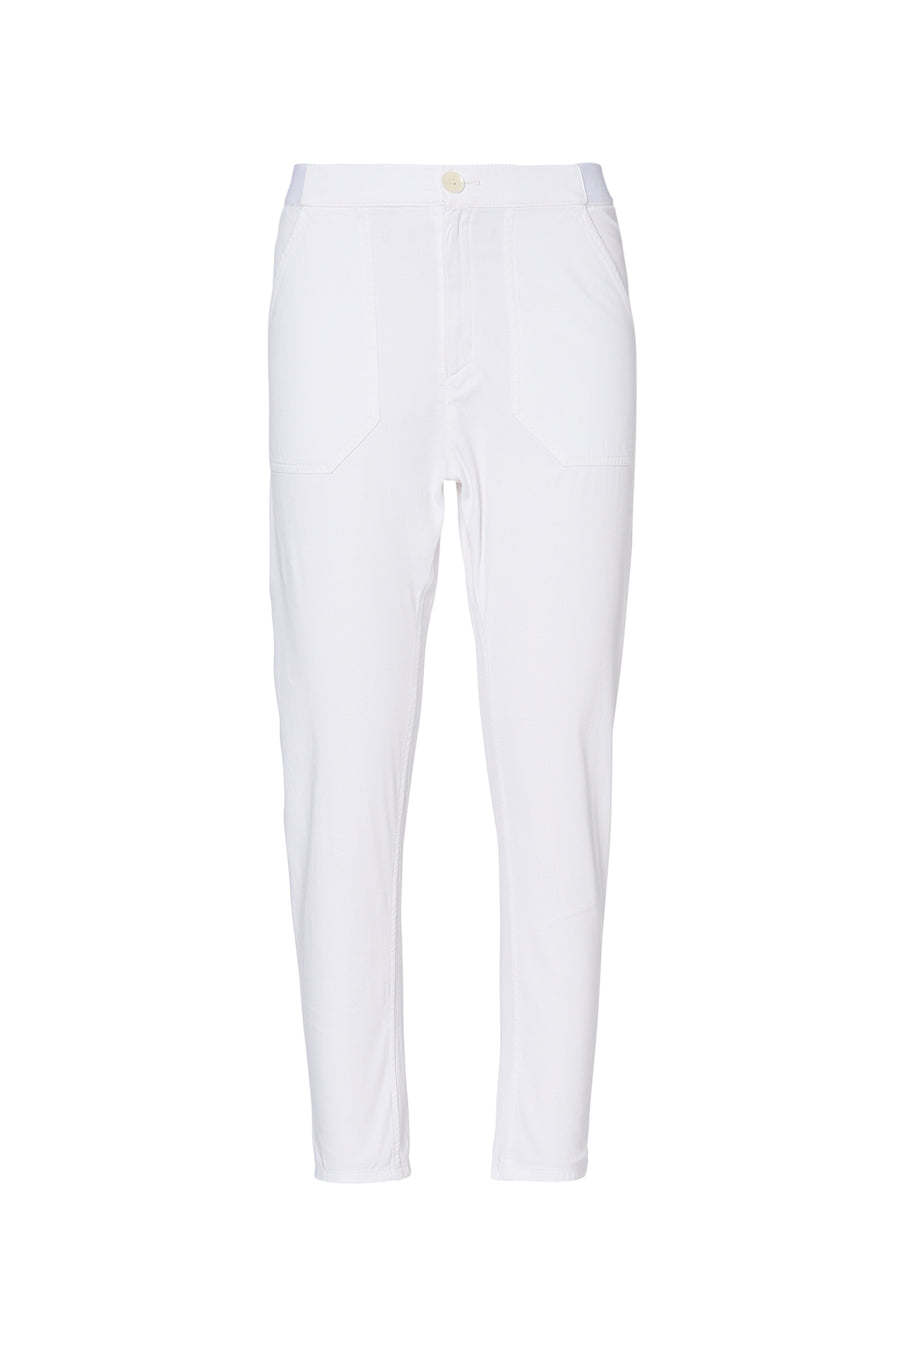 PATCH POCKET LOW RISE TROUSER WHITE, loose fit, WHITE color